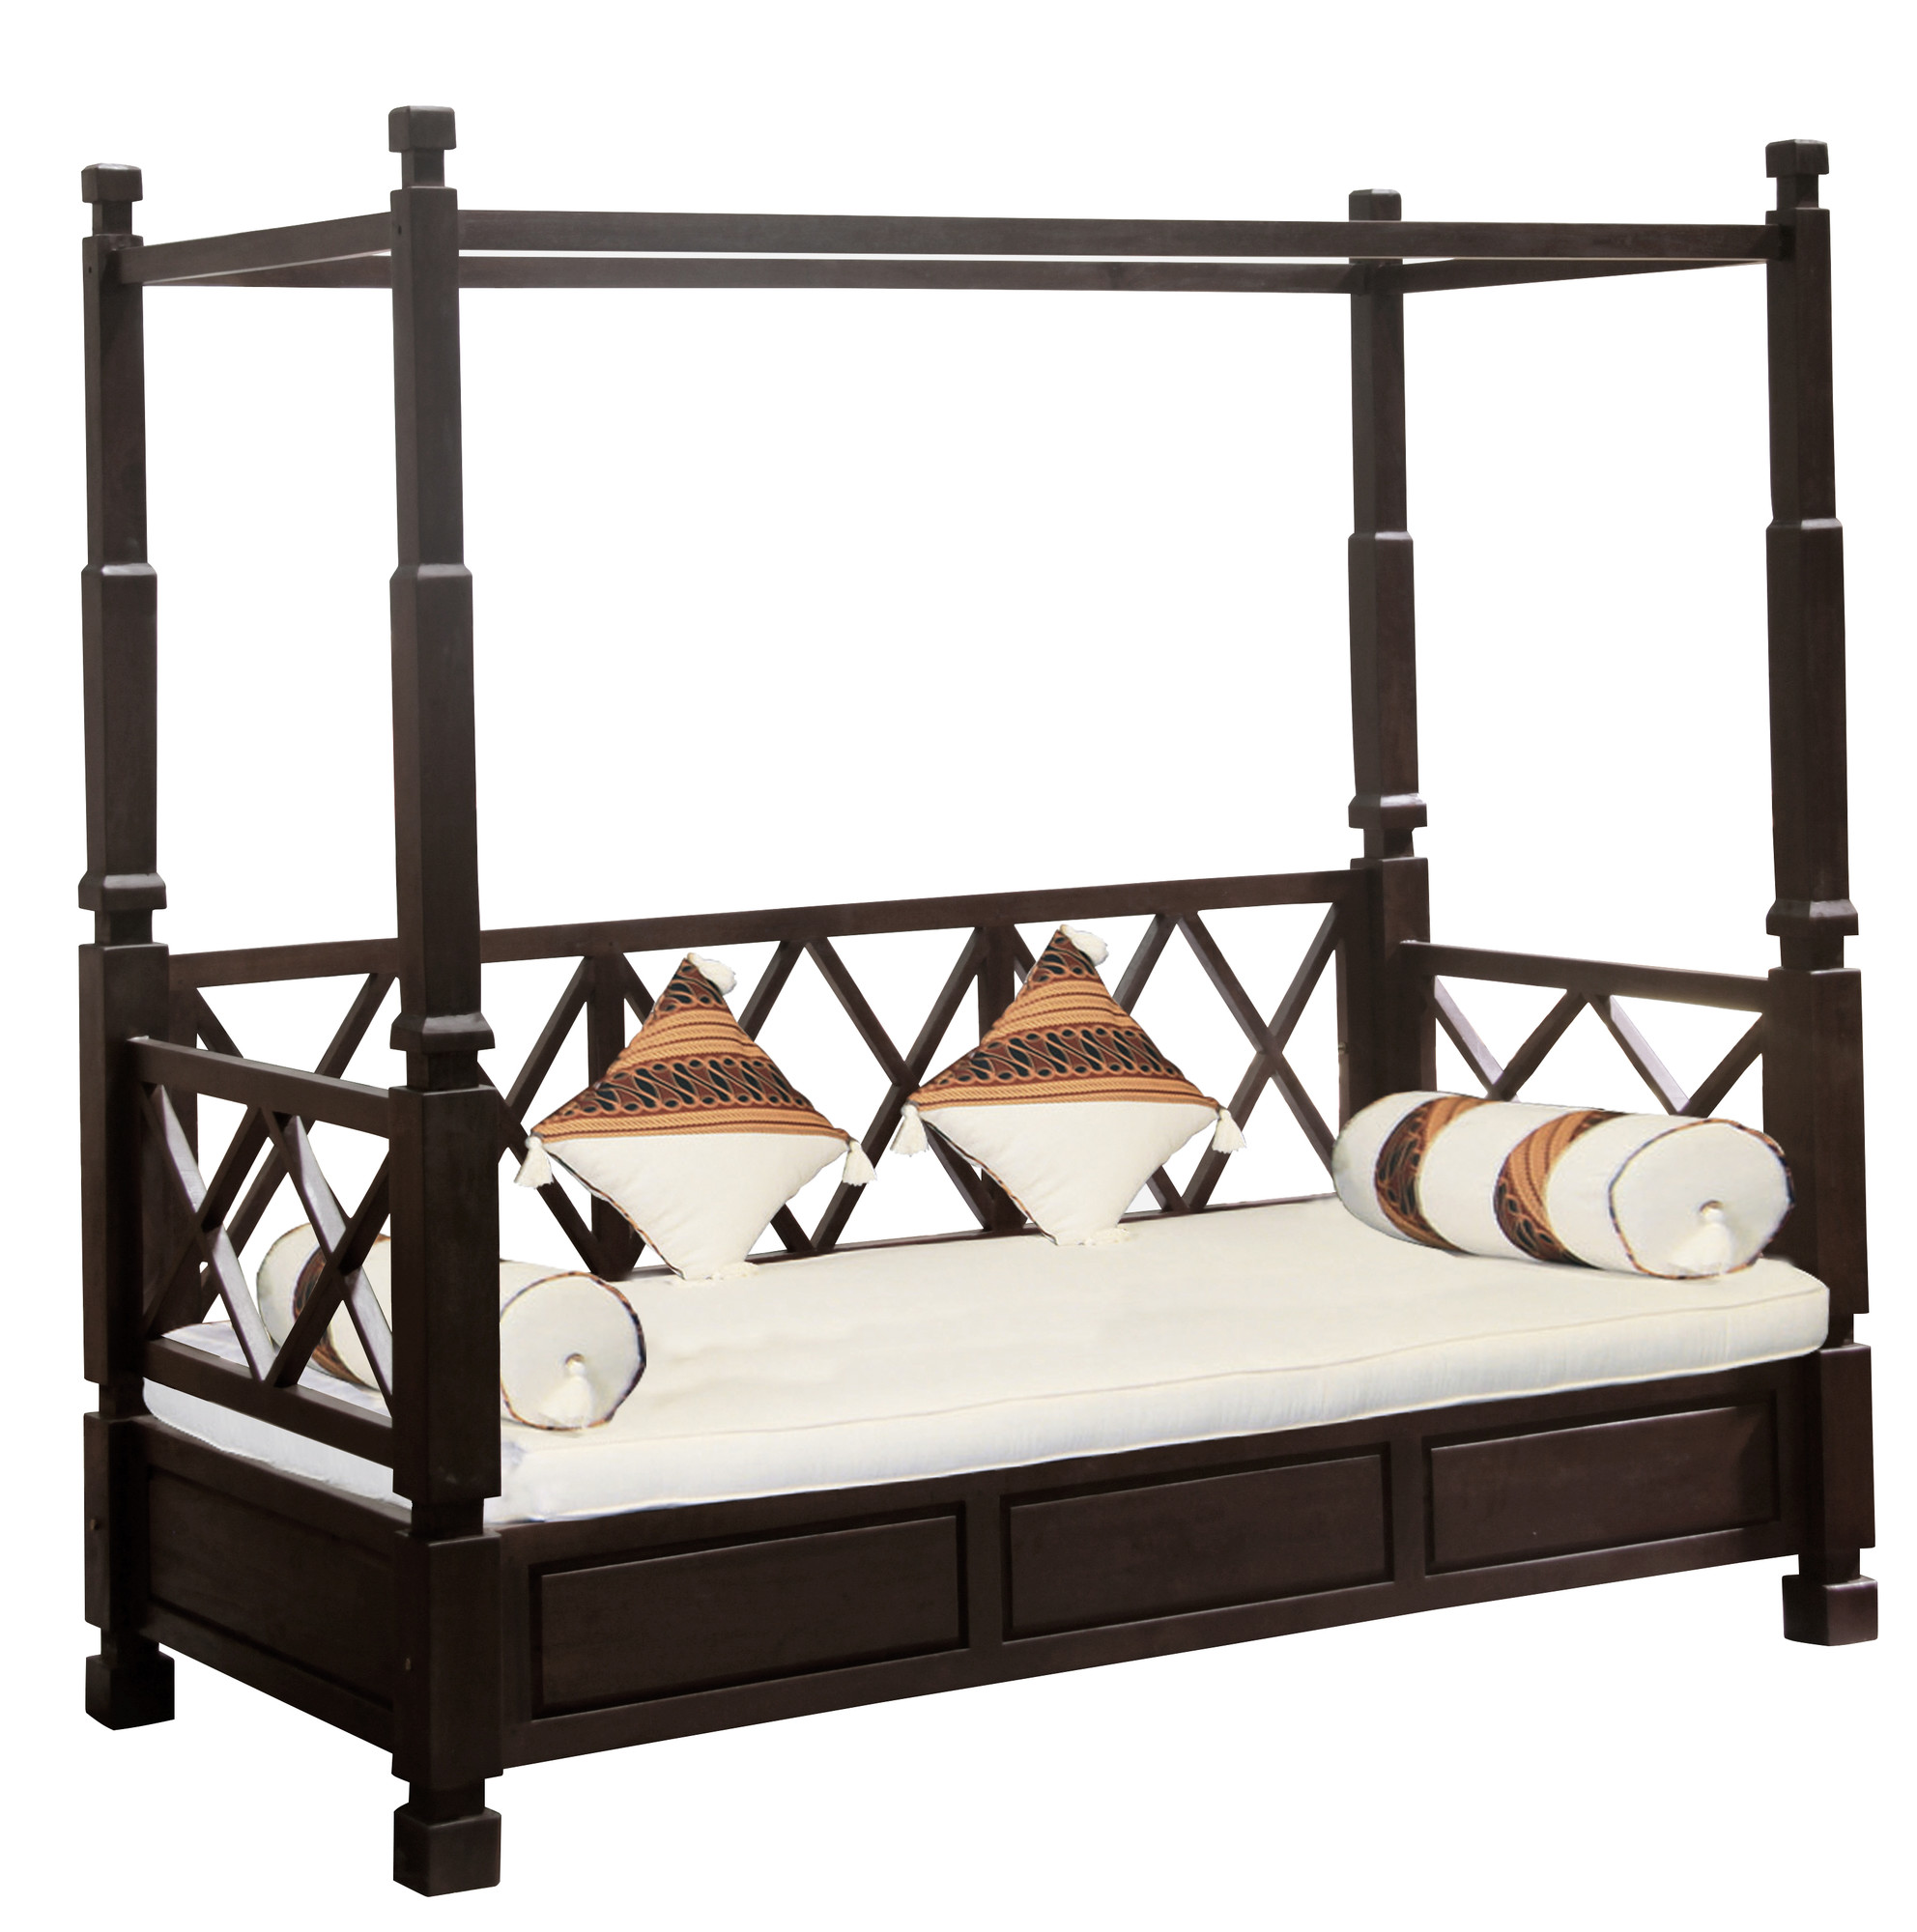 talbot beds and four poster canopy dering styles bed interiors stylish hall daily inspiration jen features design contributors portfolio